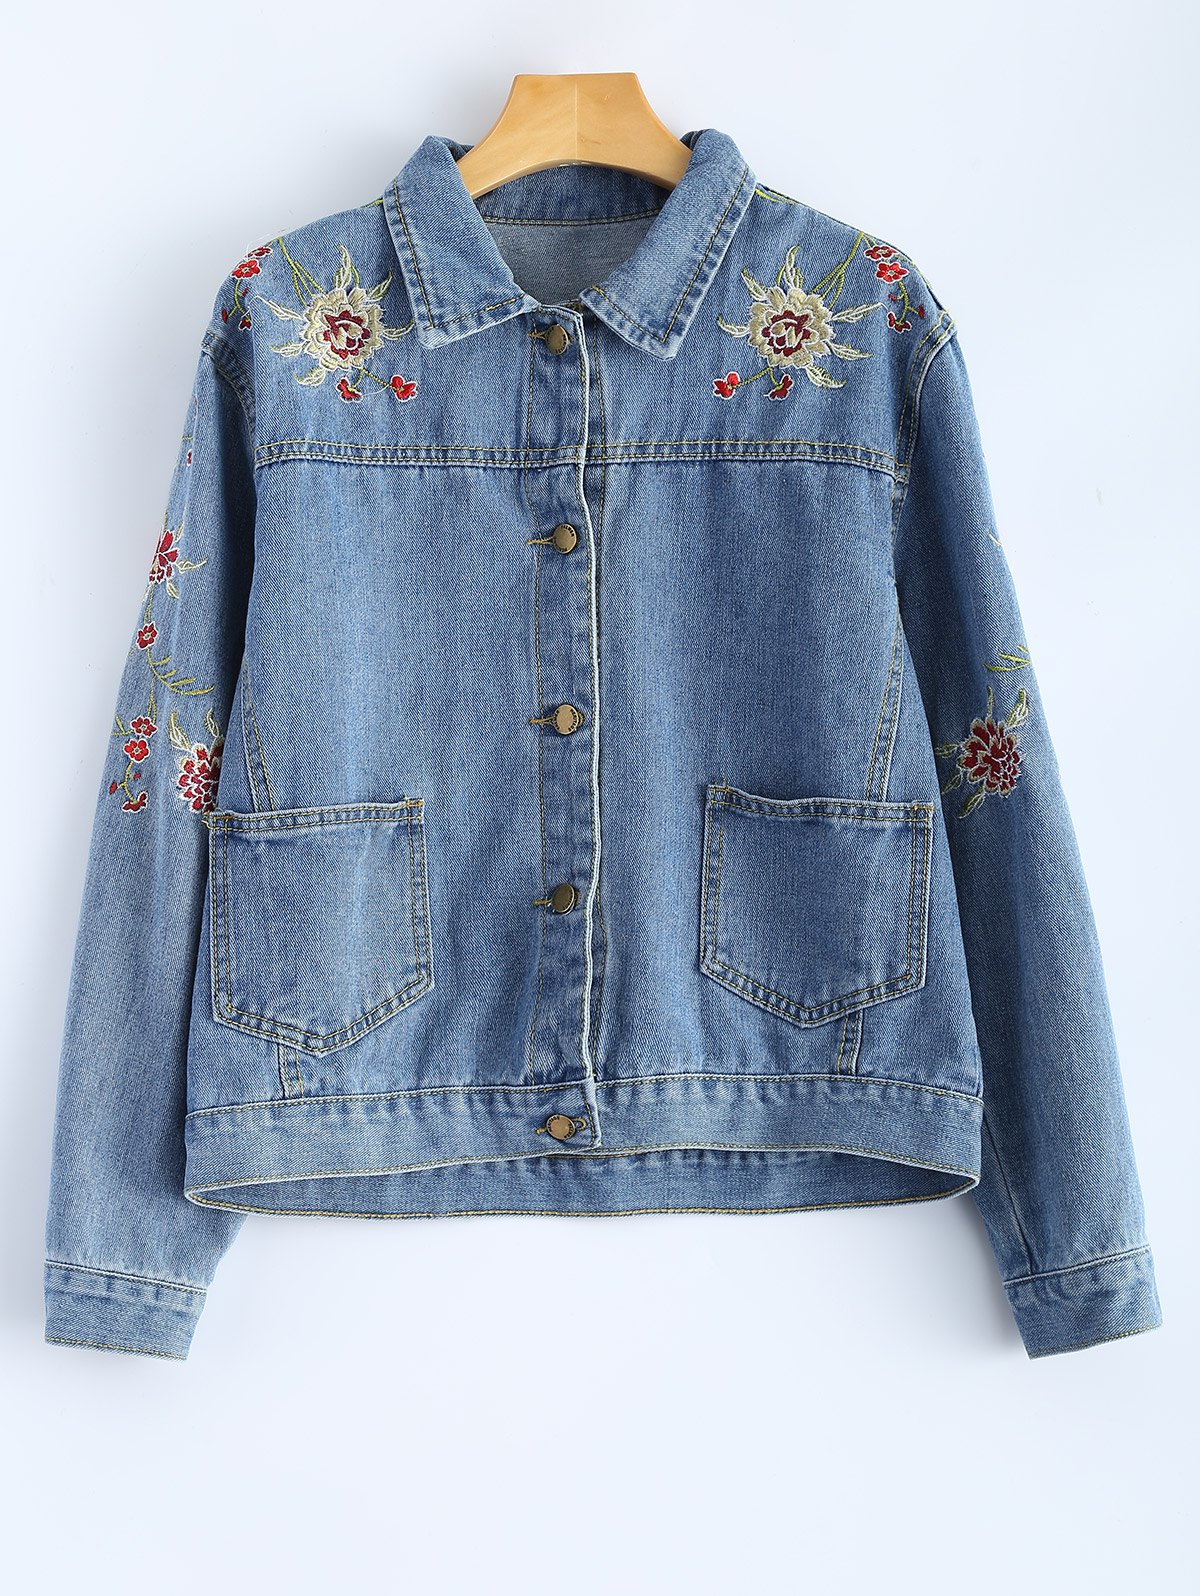 Shirt Neck Retro Floral Embroidered Denim Jacket